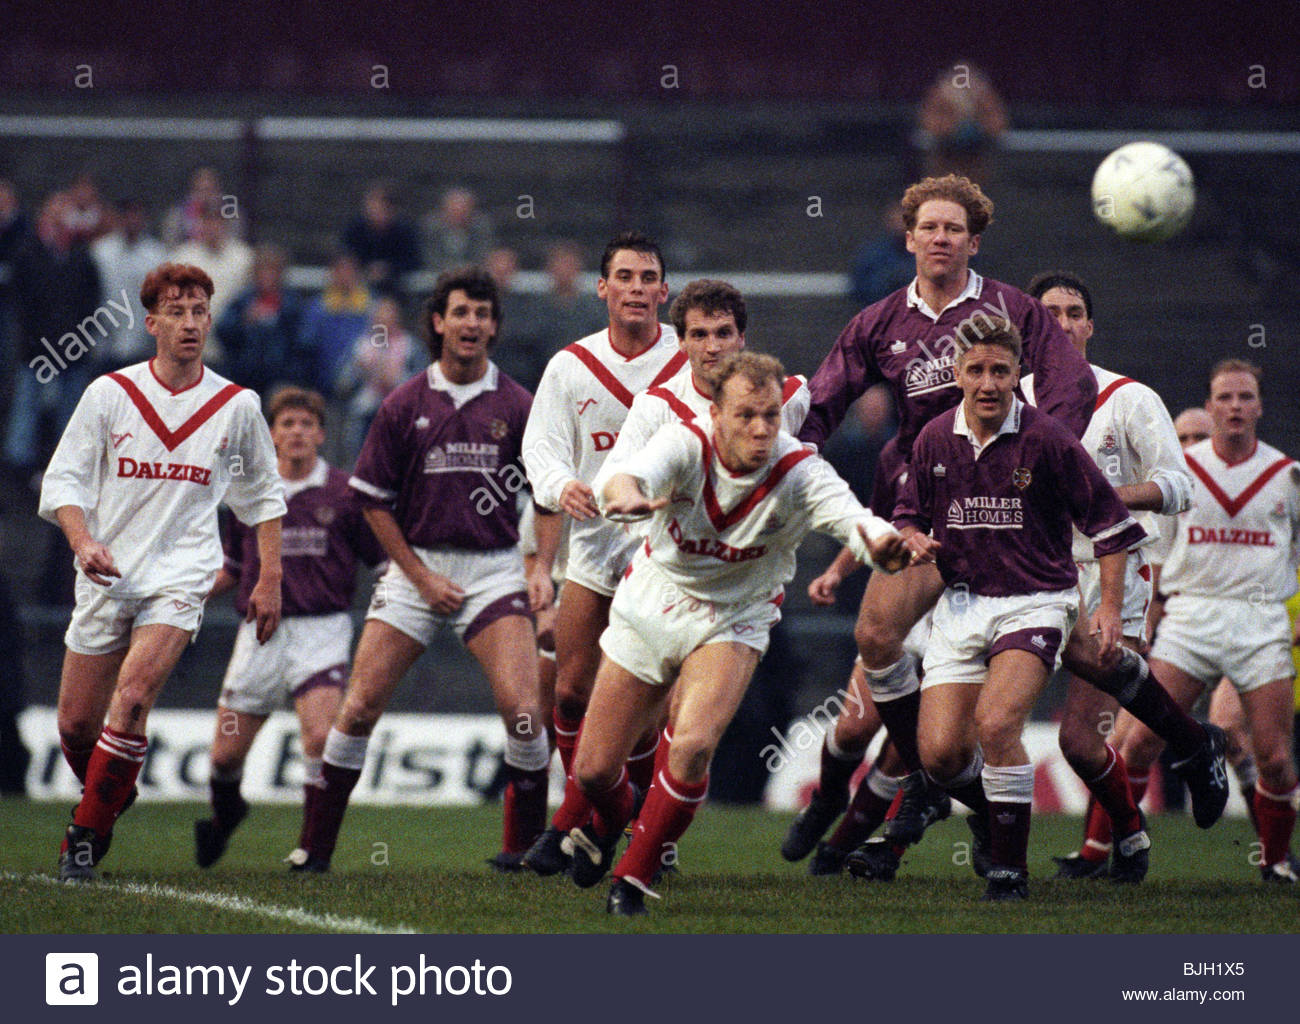 SEASON 1991/1992 HEARTS V AIRDRIE TYNECASTLE - EDINBURGH Both sets of players crowd the area as Airdrie's Jimmy - Stock Image